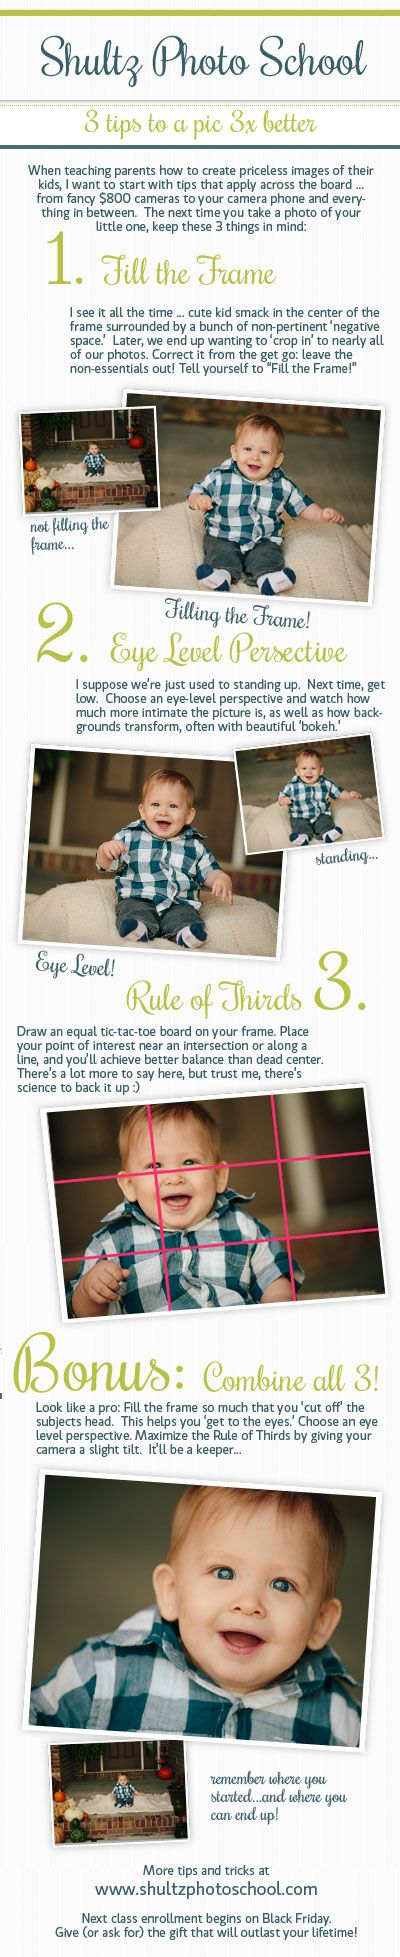 More tips and tricks at www.shultzphotoschool.com